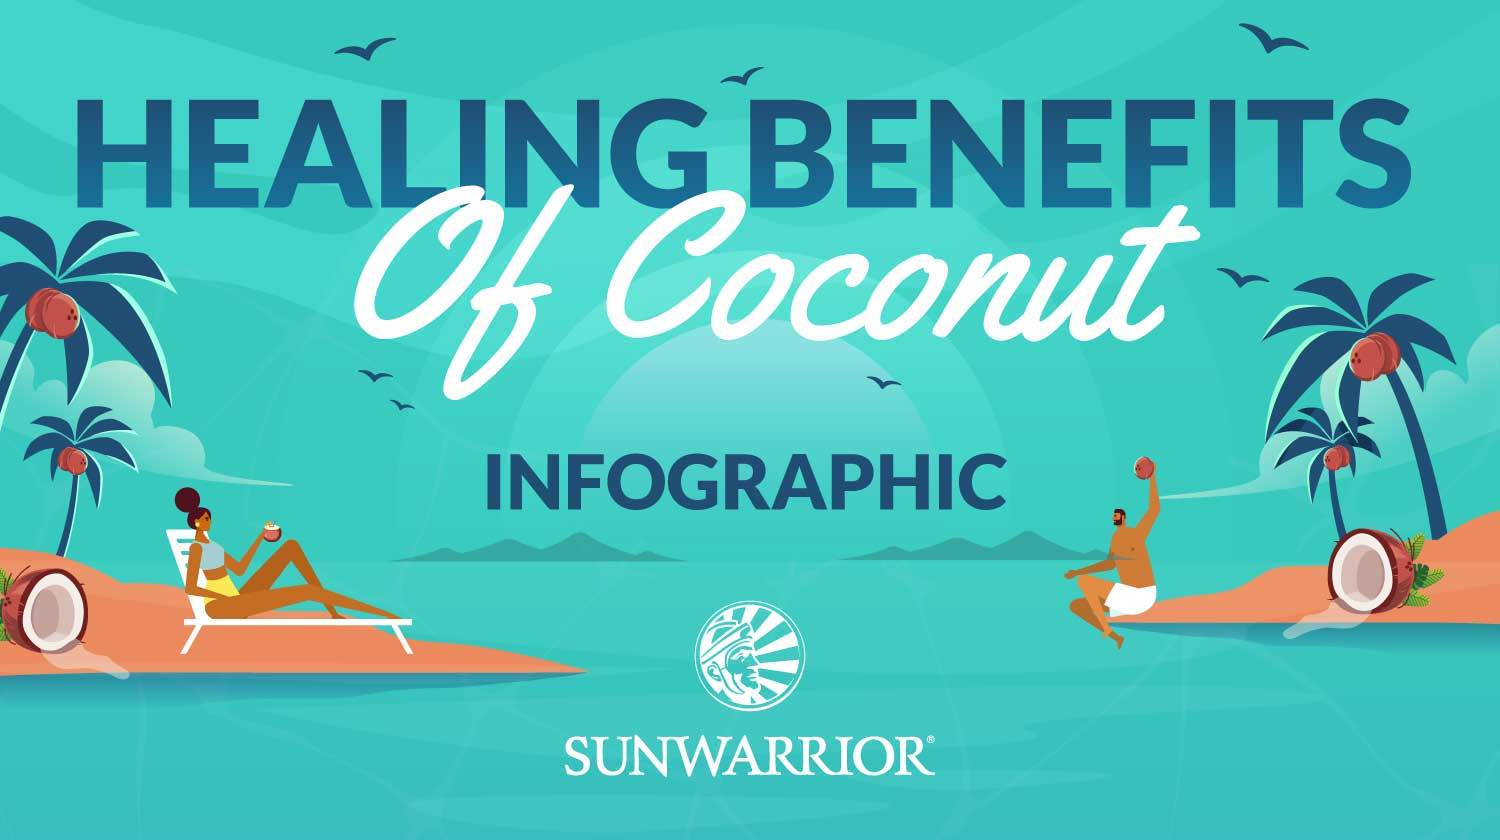 Healing benefits of coconut infographic | Healing Wonders Of Coconuts | Benefits Of Coconut | benefits of coconut water | Featured